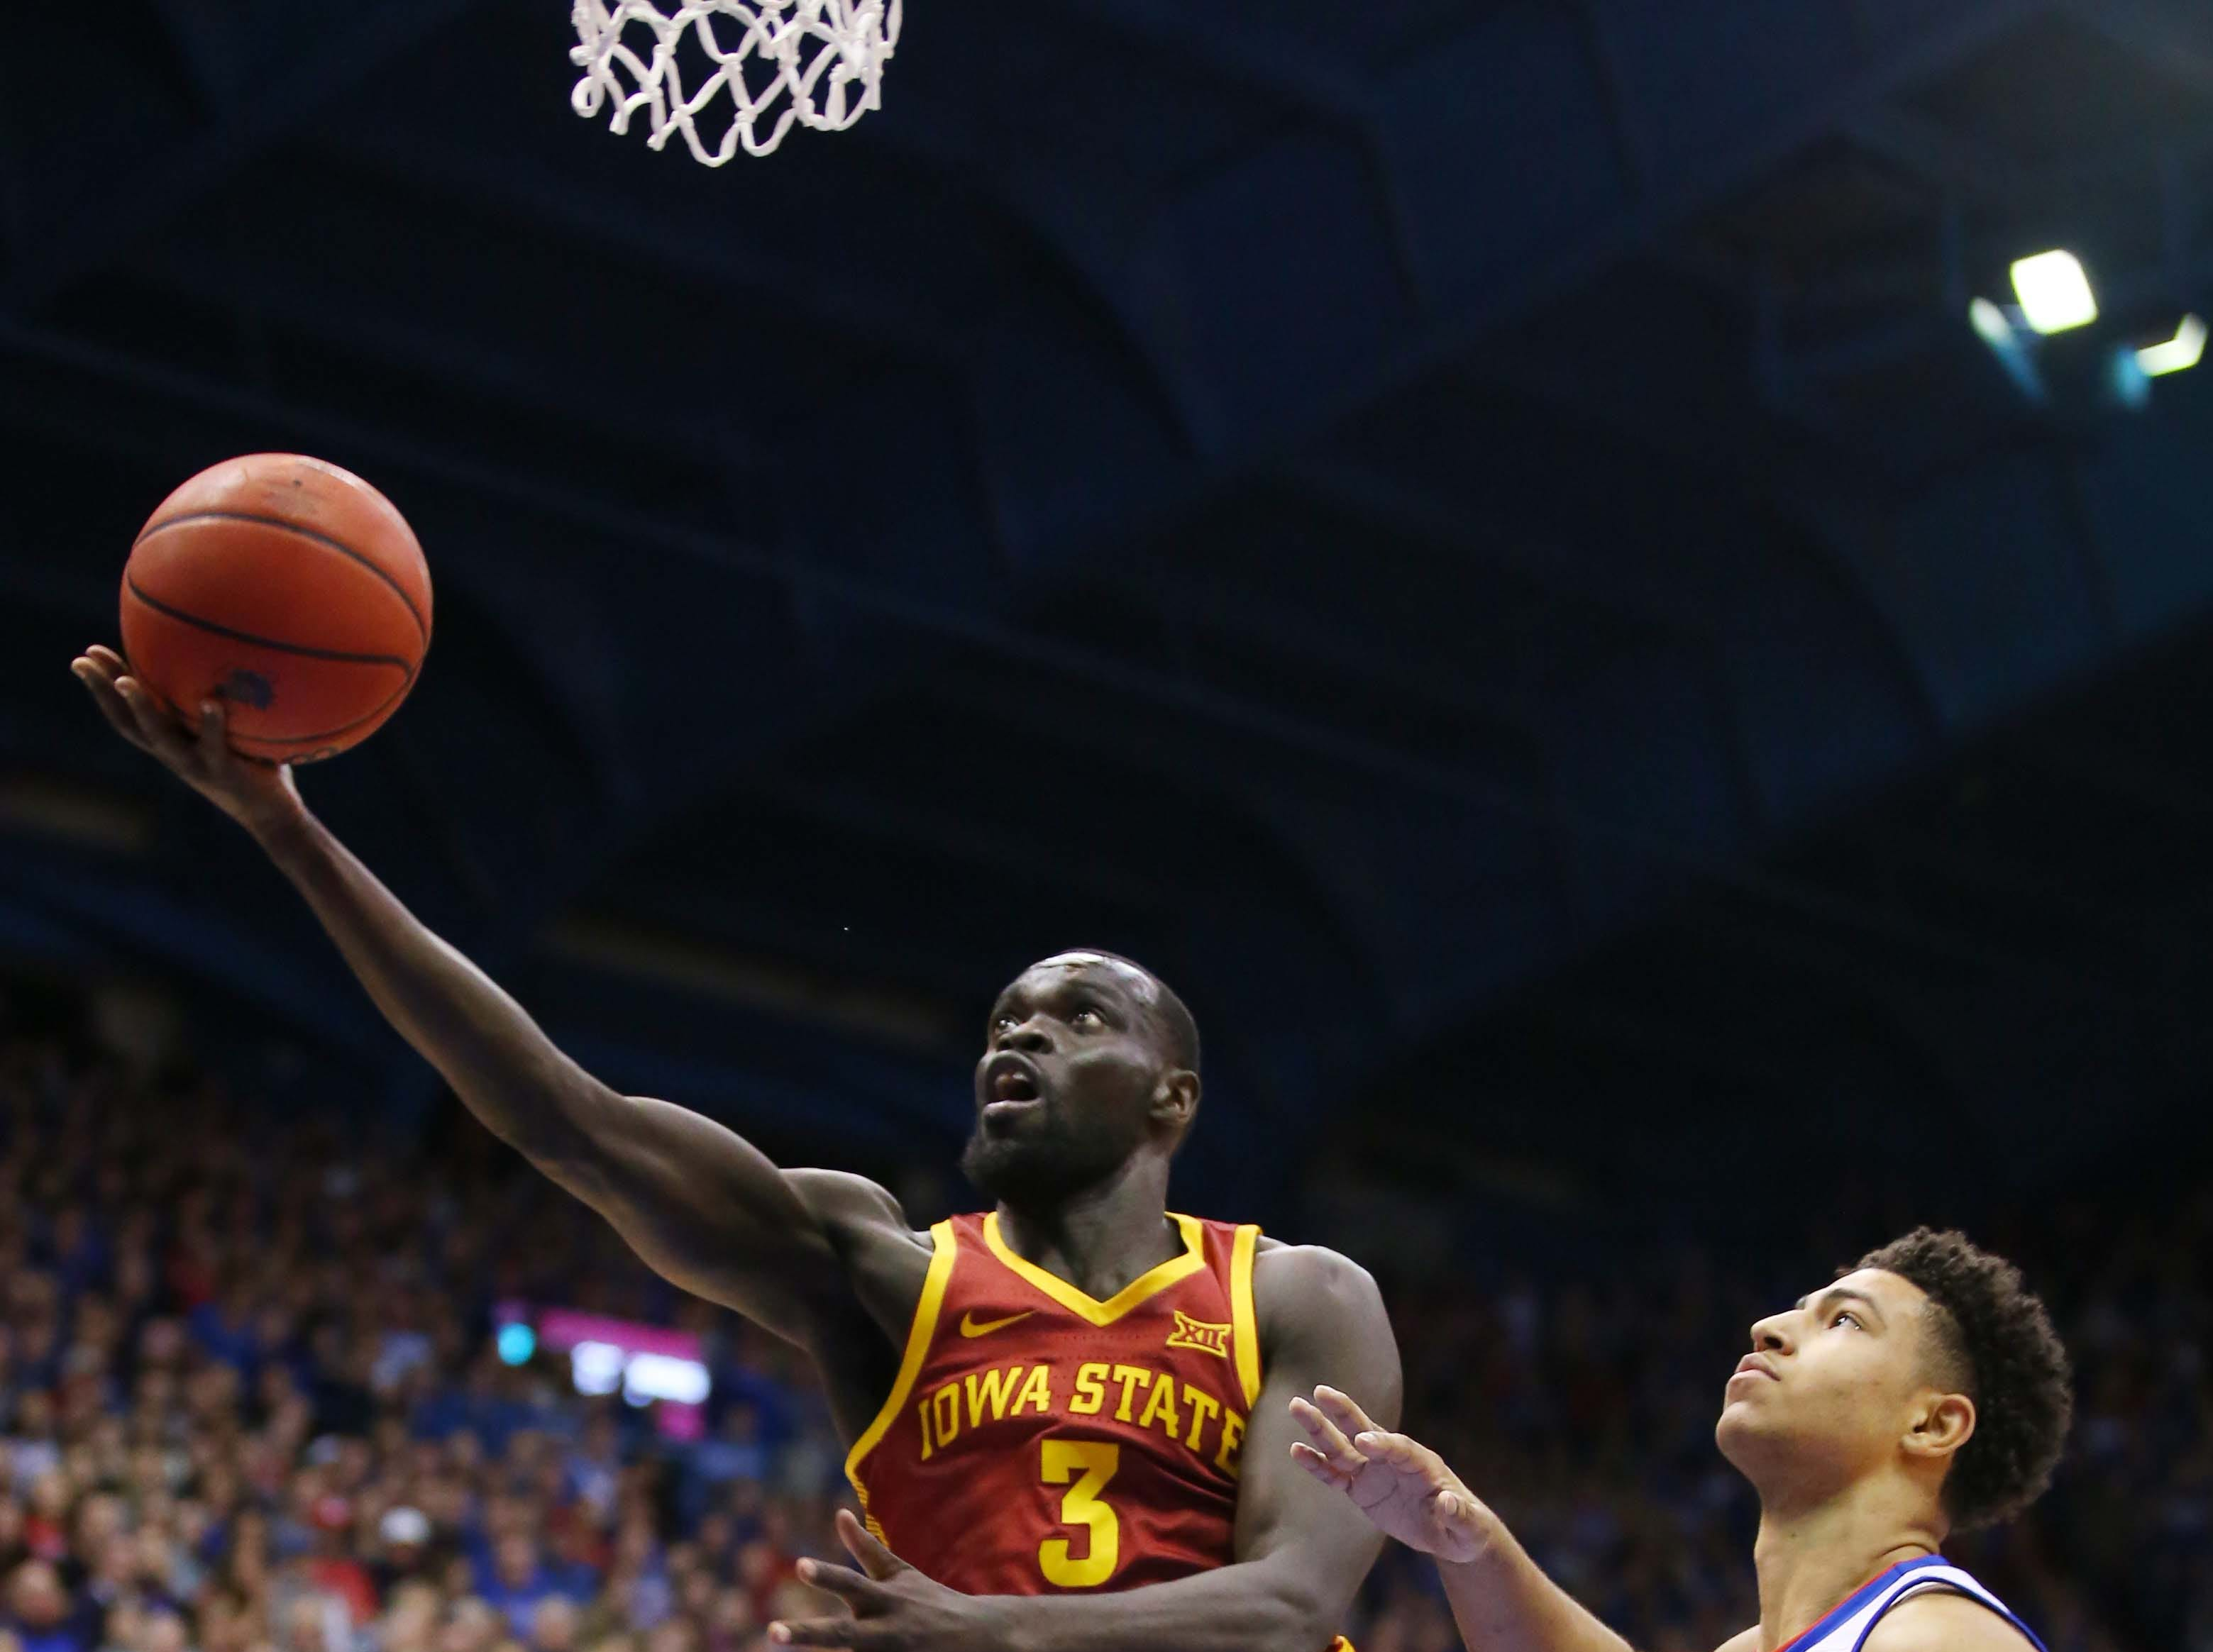 Iowa State Cyclones guard Marial Shayok (3) shoots a layup as Kansas Jayhawks guard Quentin Grimes (5) defends in the first half at Allen Fieldhouse.